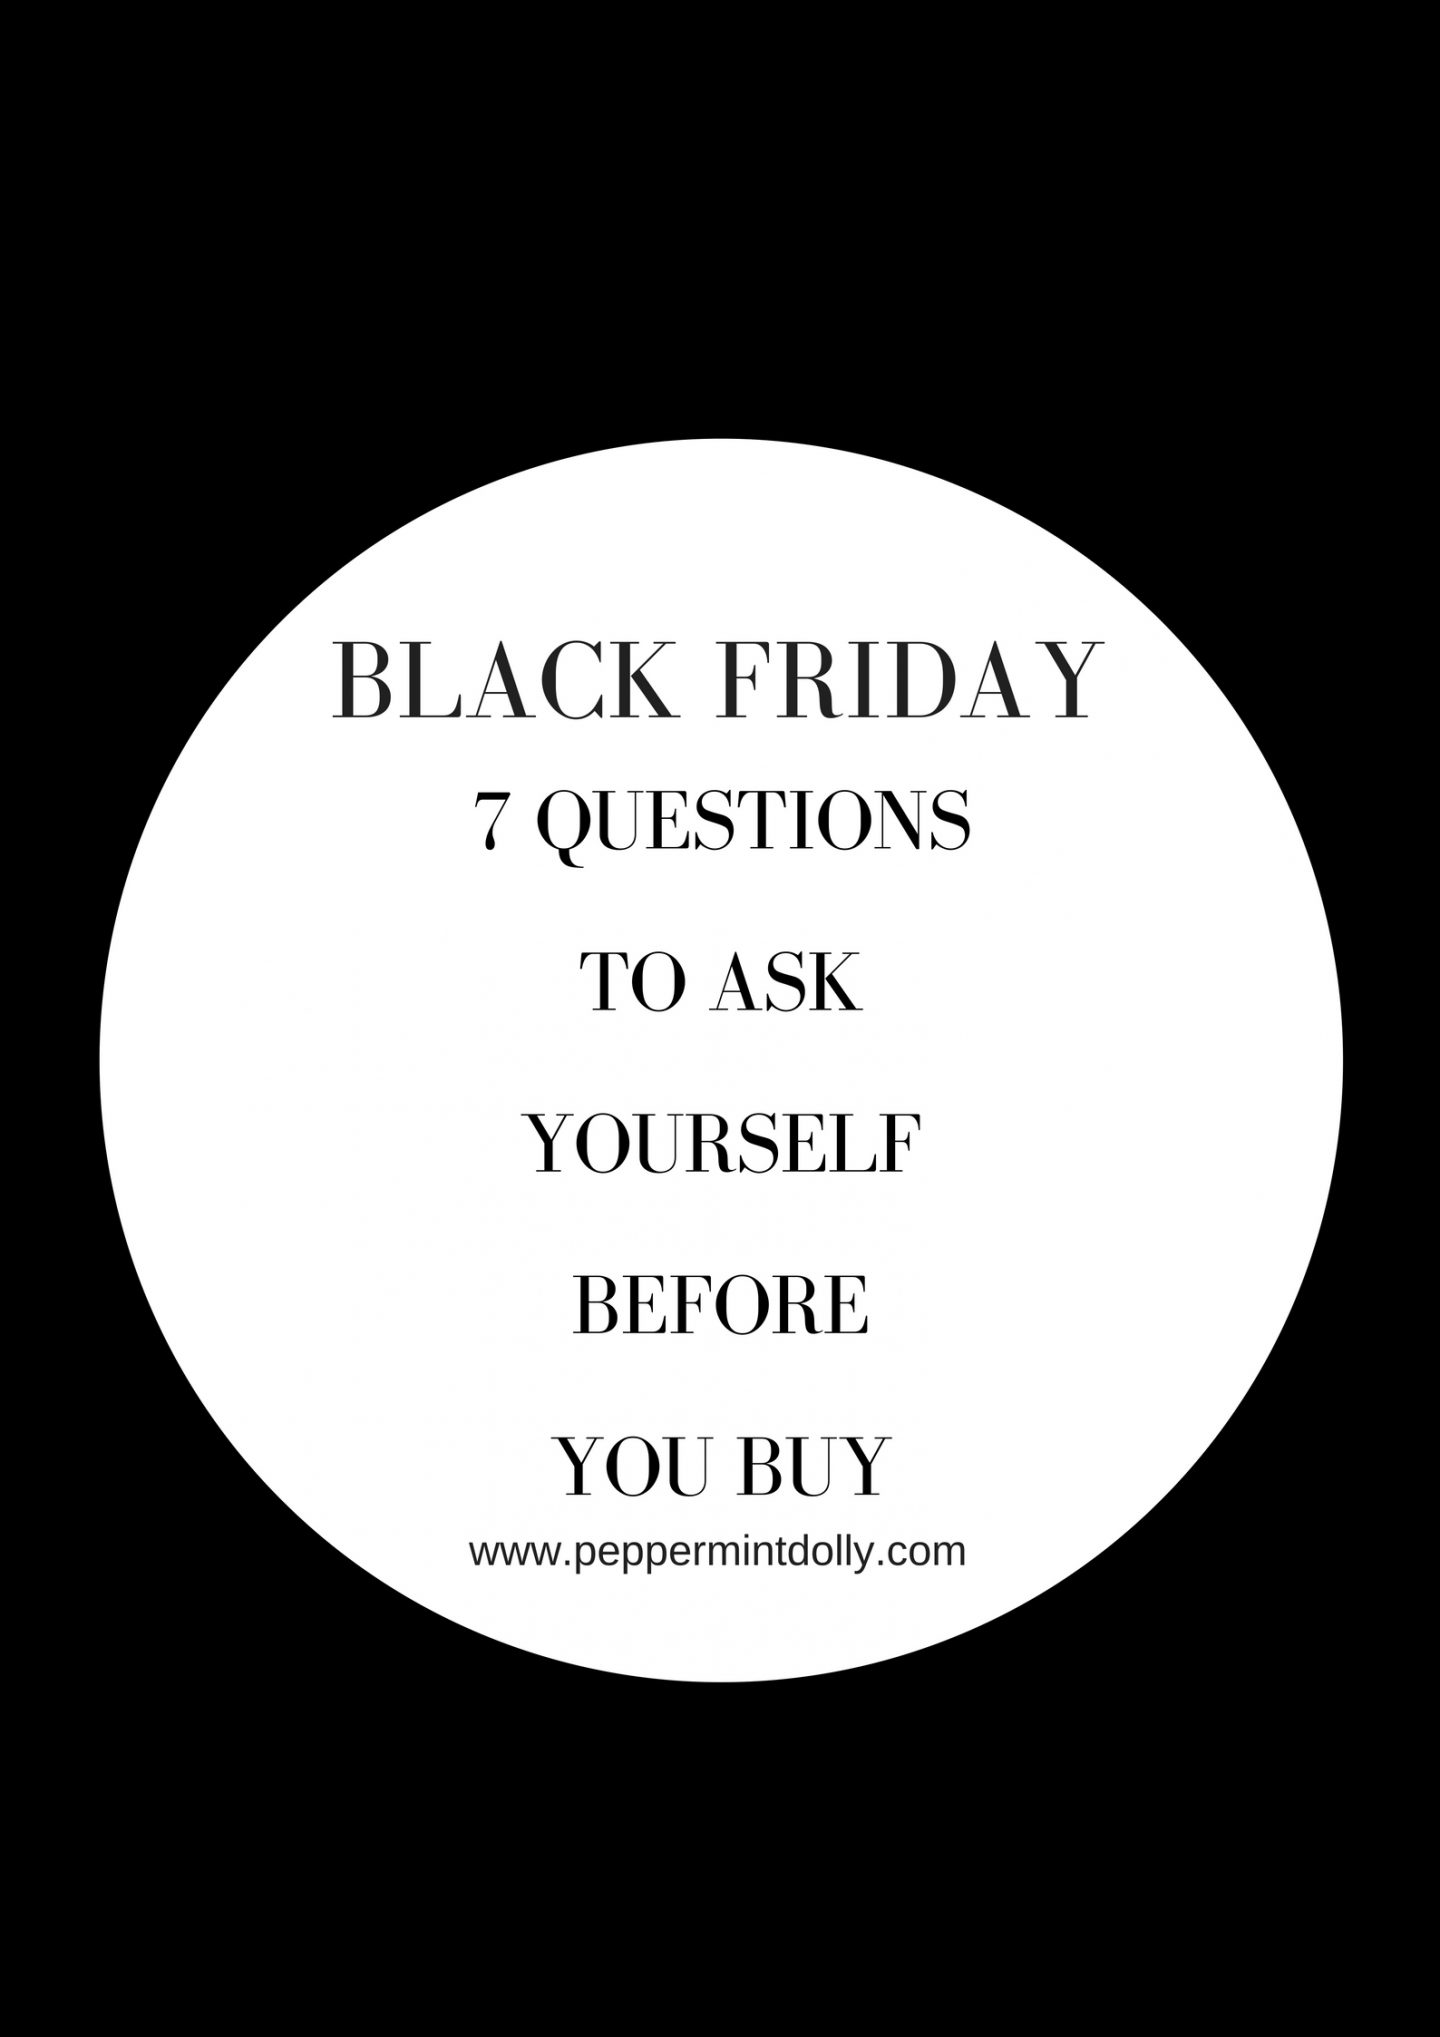 Black Friday 7 Questions To Ask Yourself Before You Buy